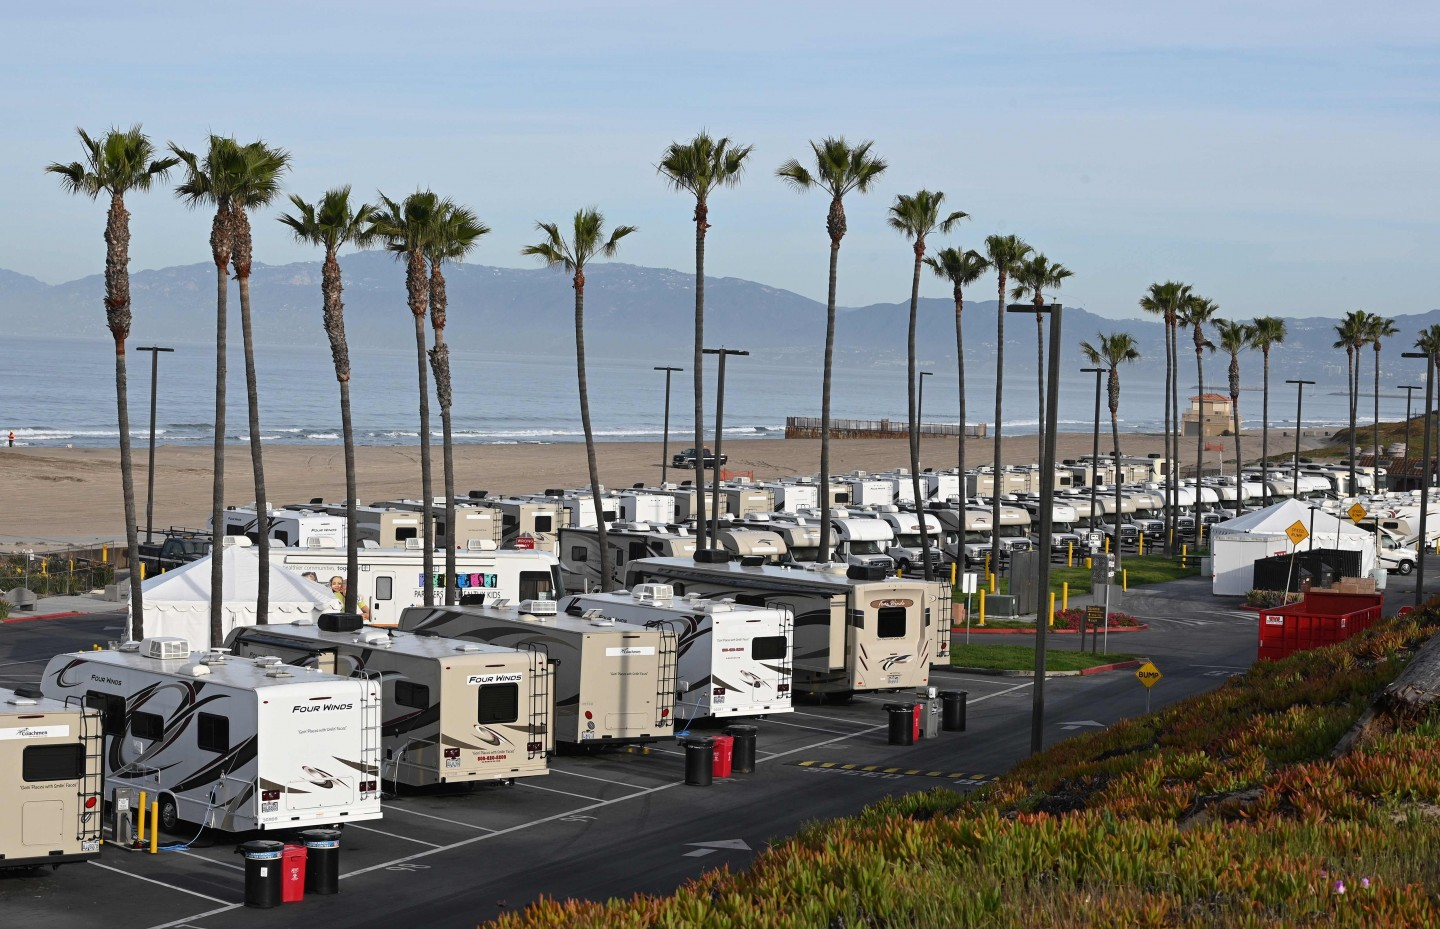 RV campers in a beachside parking lot being used as an isolation zone for people with Covid-19, on 31 March 2020, at Dockweiler State Beach in Los Angeles, California. (Robyn Beck/AFP)